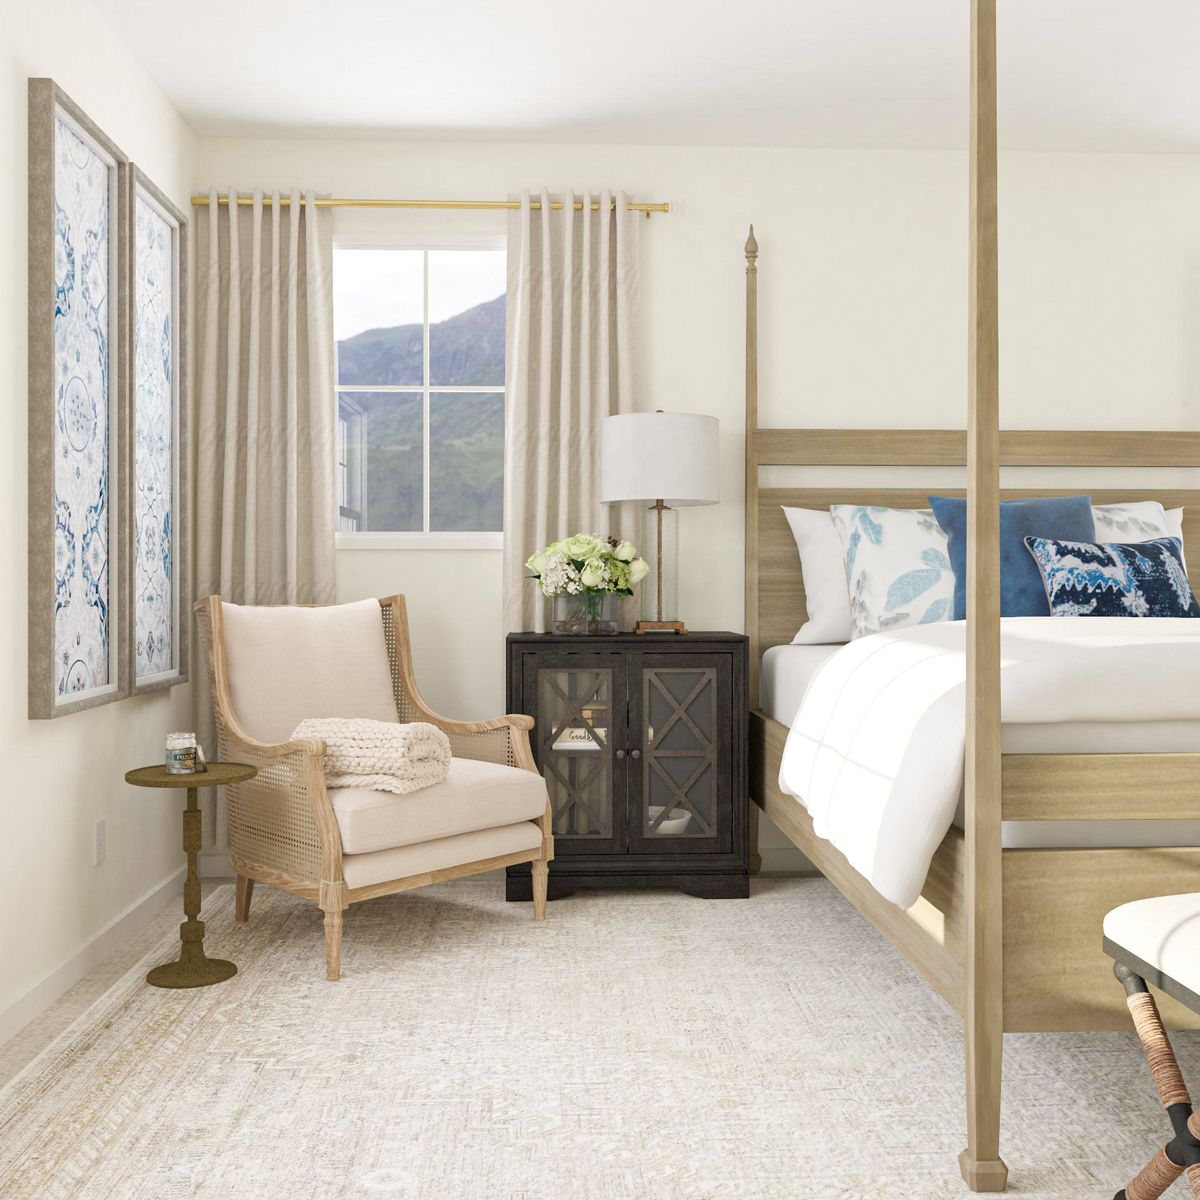 20 Bedroom Seating Area Ideas To Try in Your Space Now ...